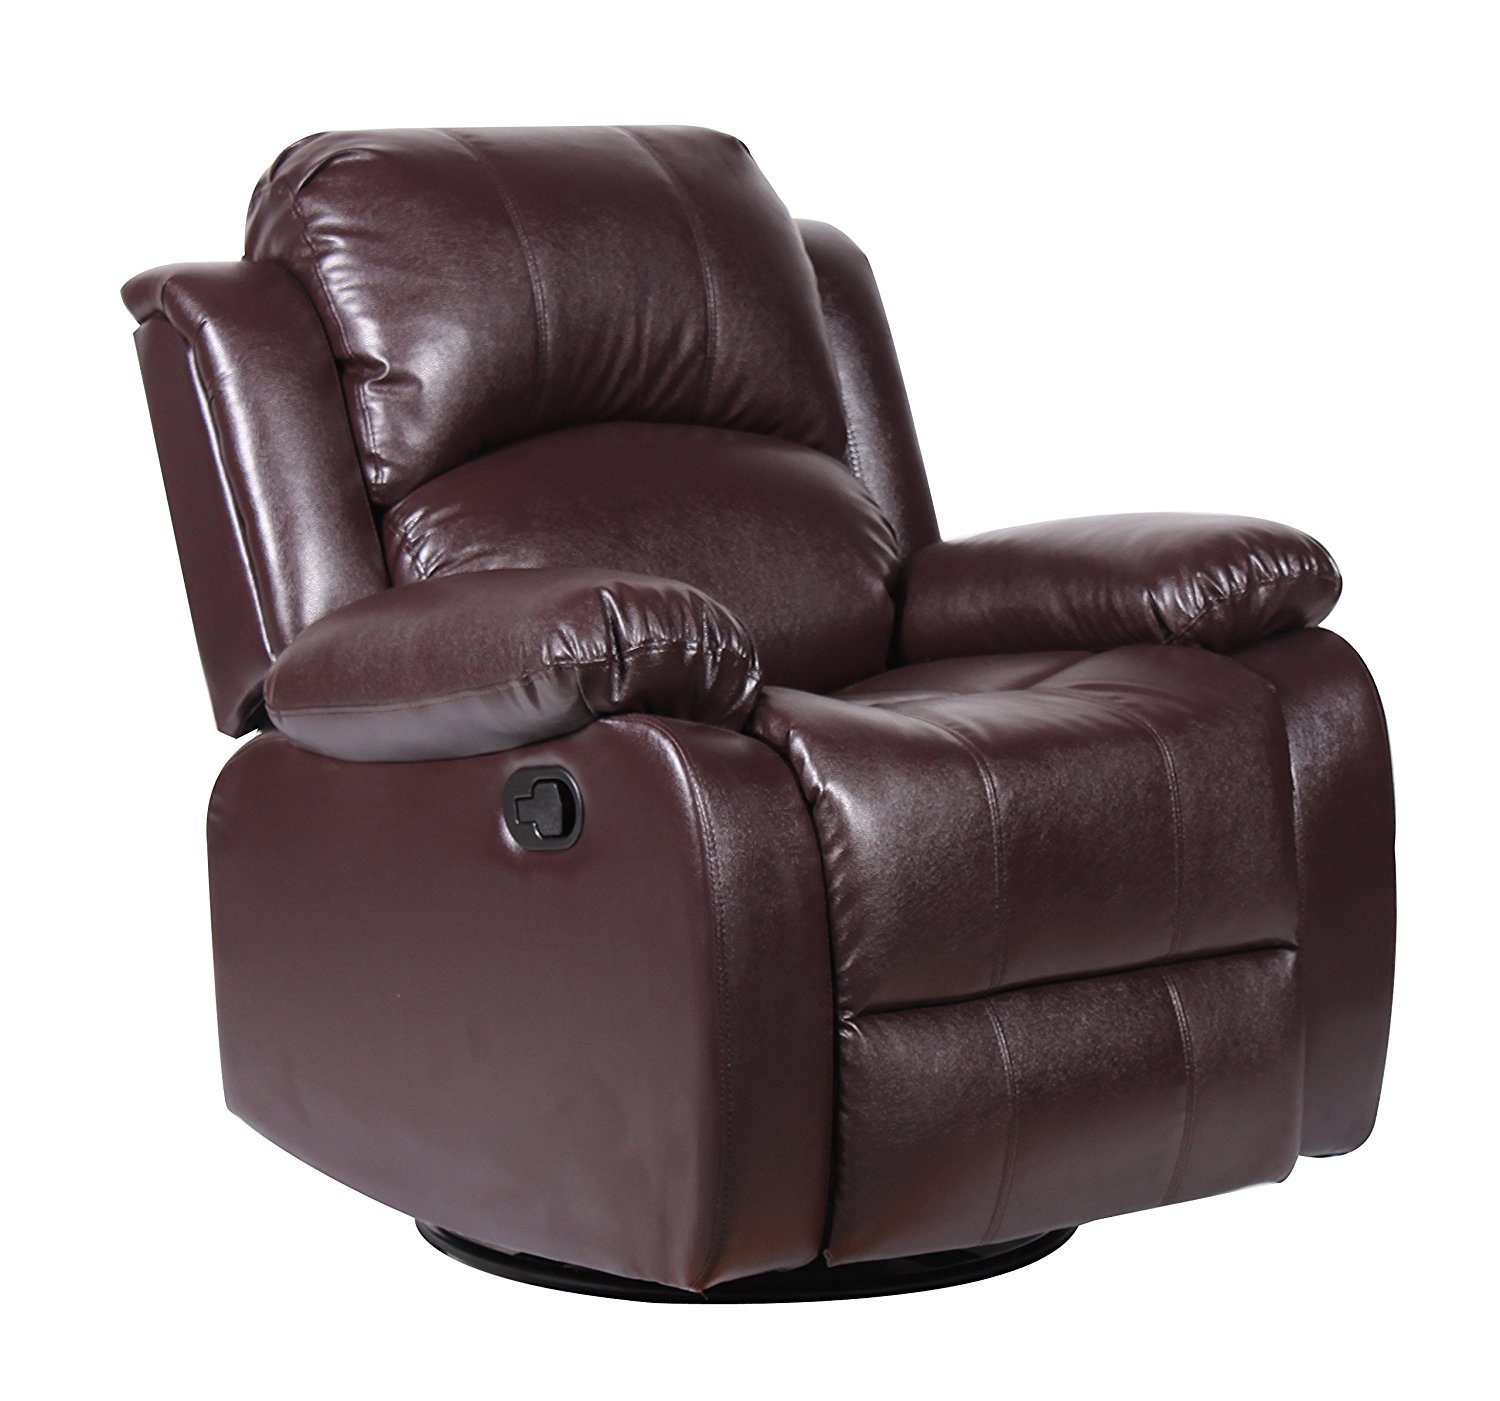 Swivel Rocking Chairs Swivel Rocker Chairs For Living Room Home Furniture Design